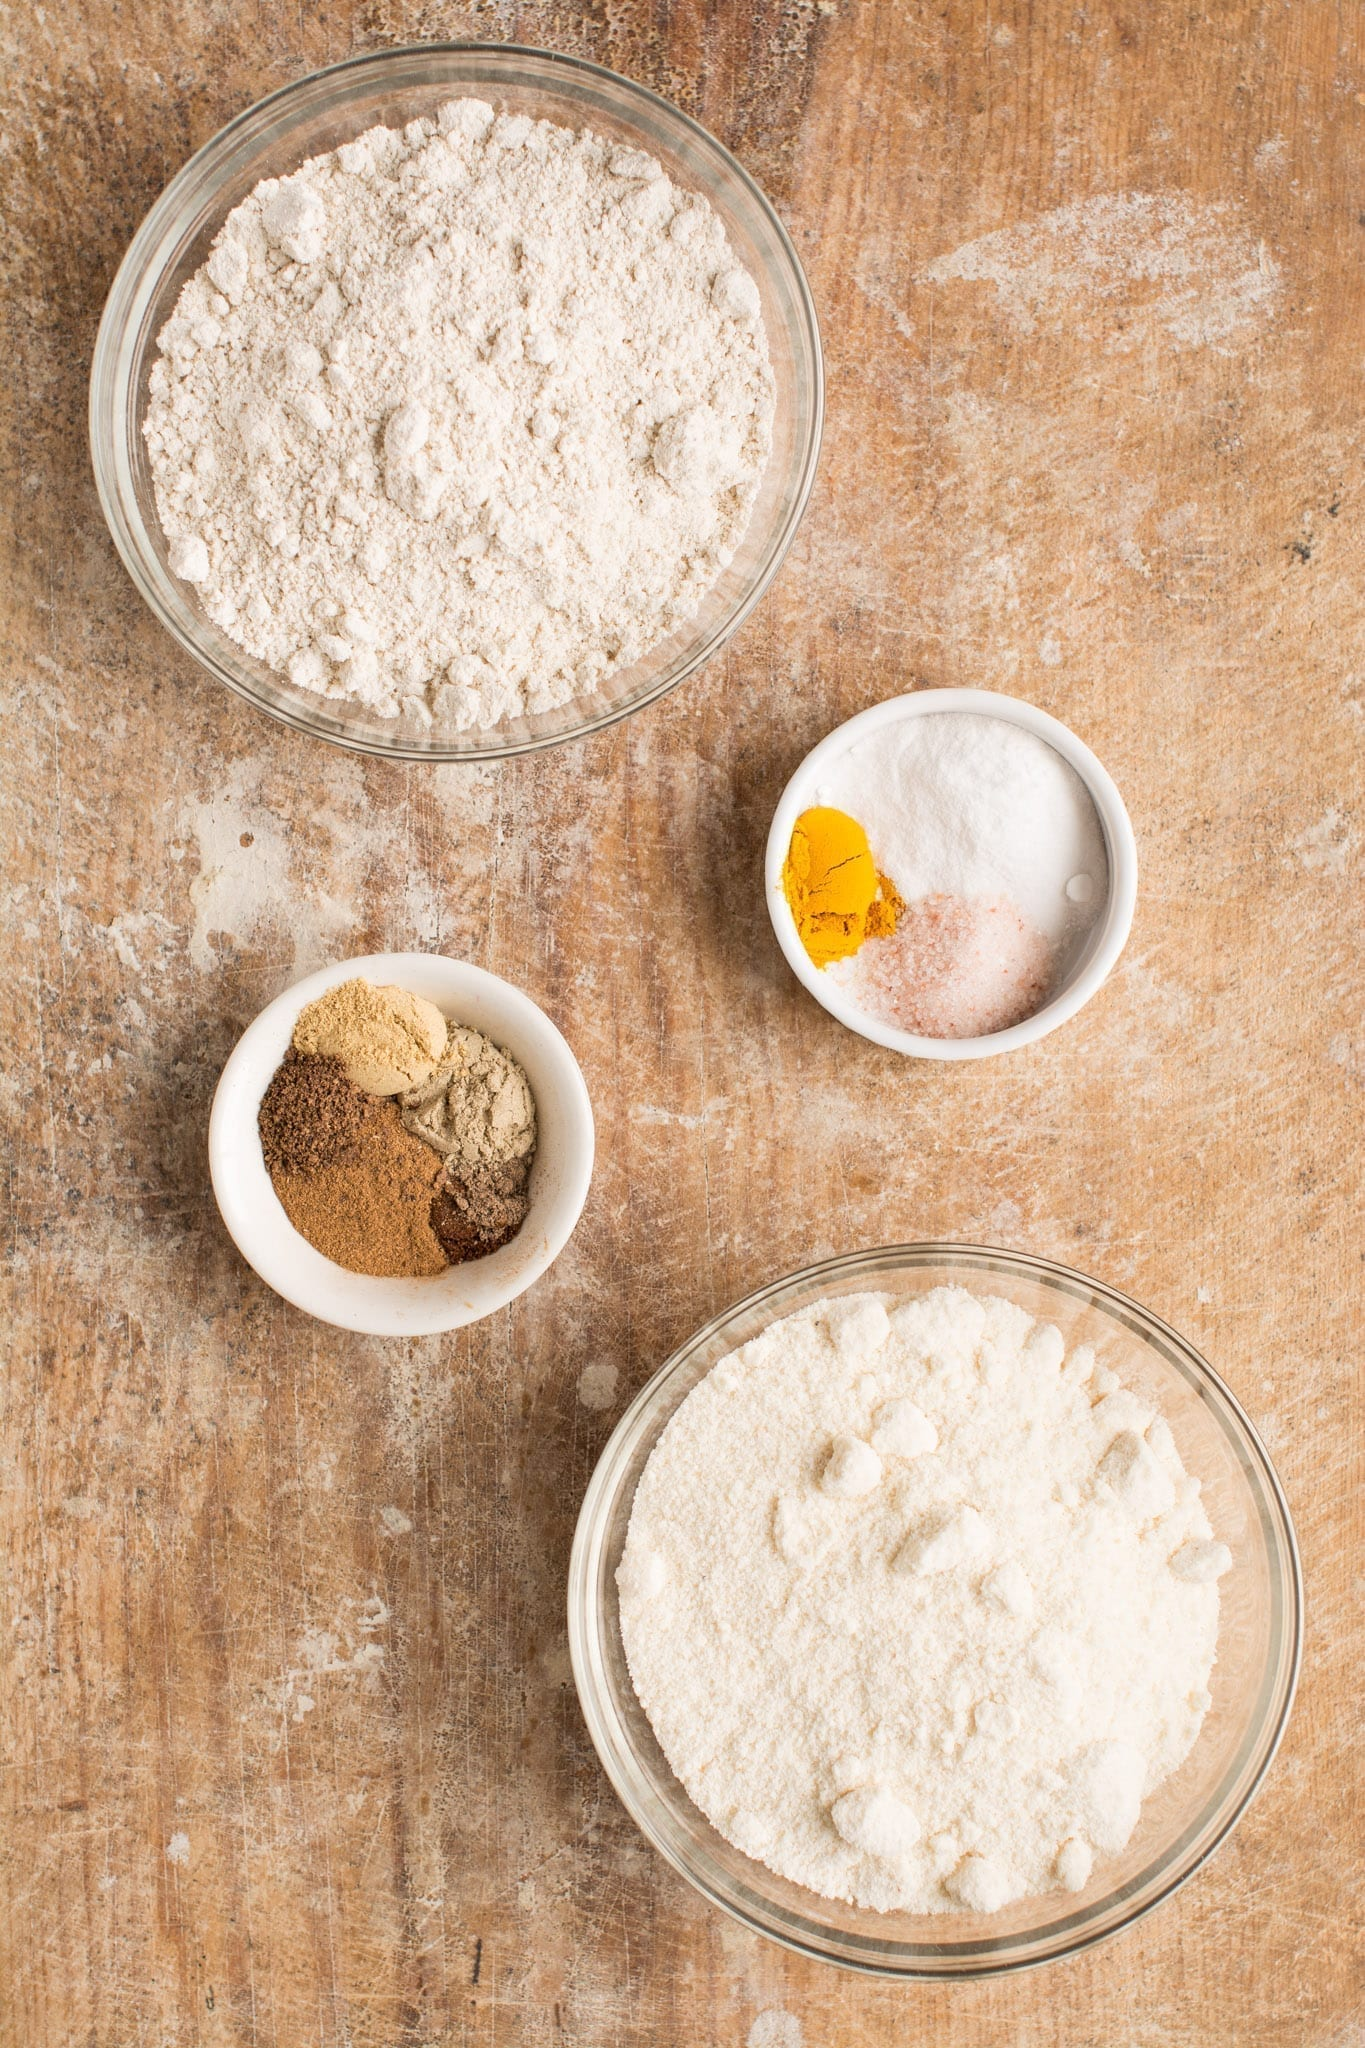 Dry ingredients of gluten free pumpkin bread